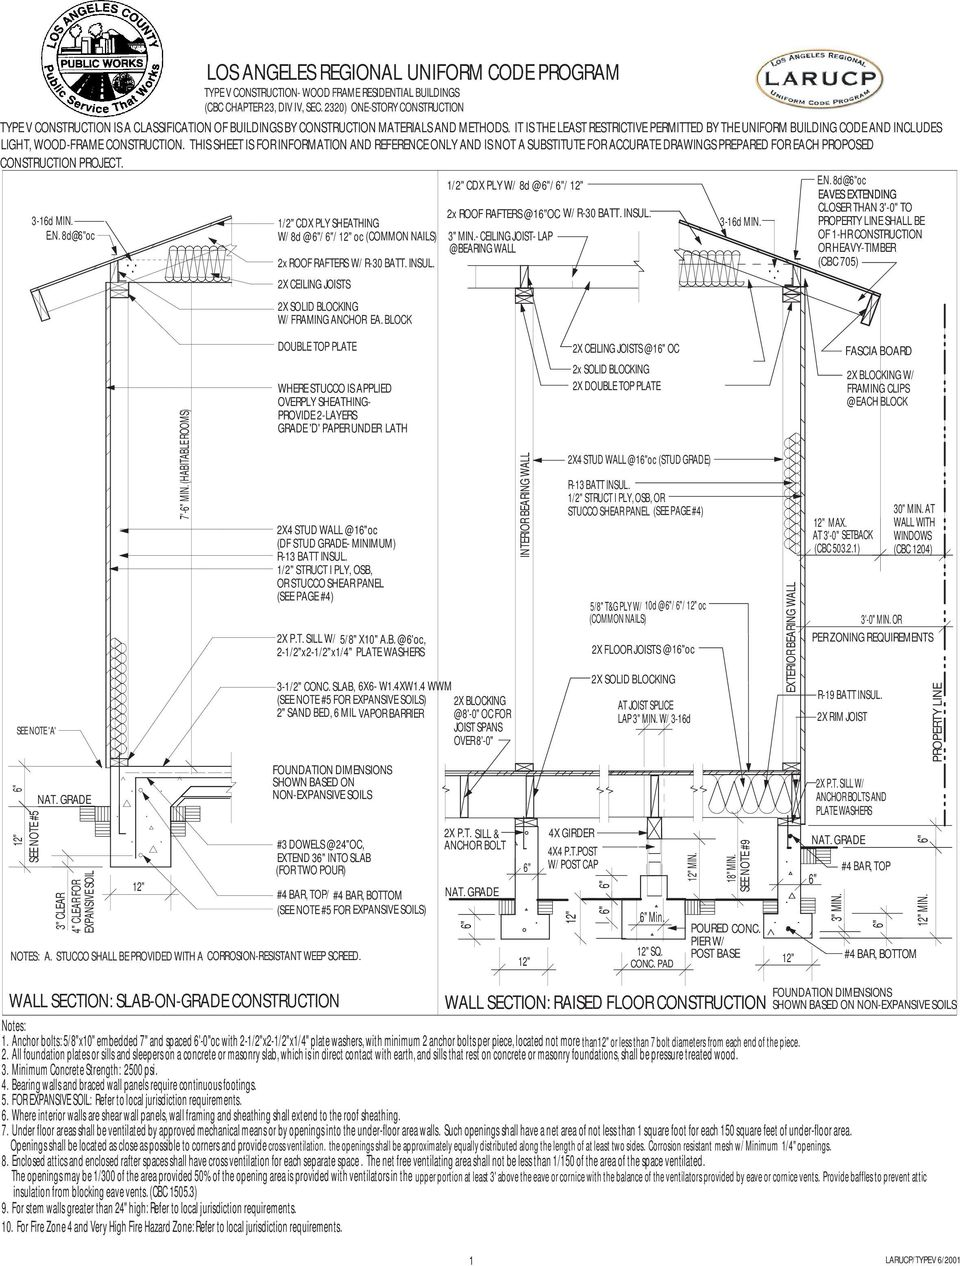 "THIS SHEET IS FOR INFORMATION AND REFERENCE ONLY AND IS NOT A SUBSTITUTE FOR ACCURATE DRAWINGS PREPARED FOR EACH PROPOSED CONSTRUCTION PROJECT. 1/2"" CDX PLY W/ 8d @ / / E.N. 8d@oc SEE NOTE 'A' SEE NOTE #5 NAT."